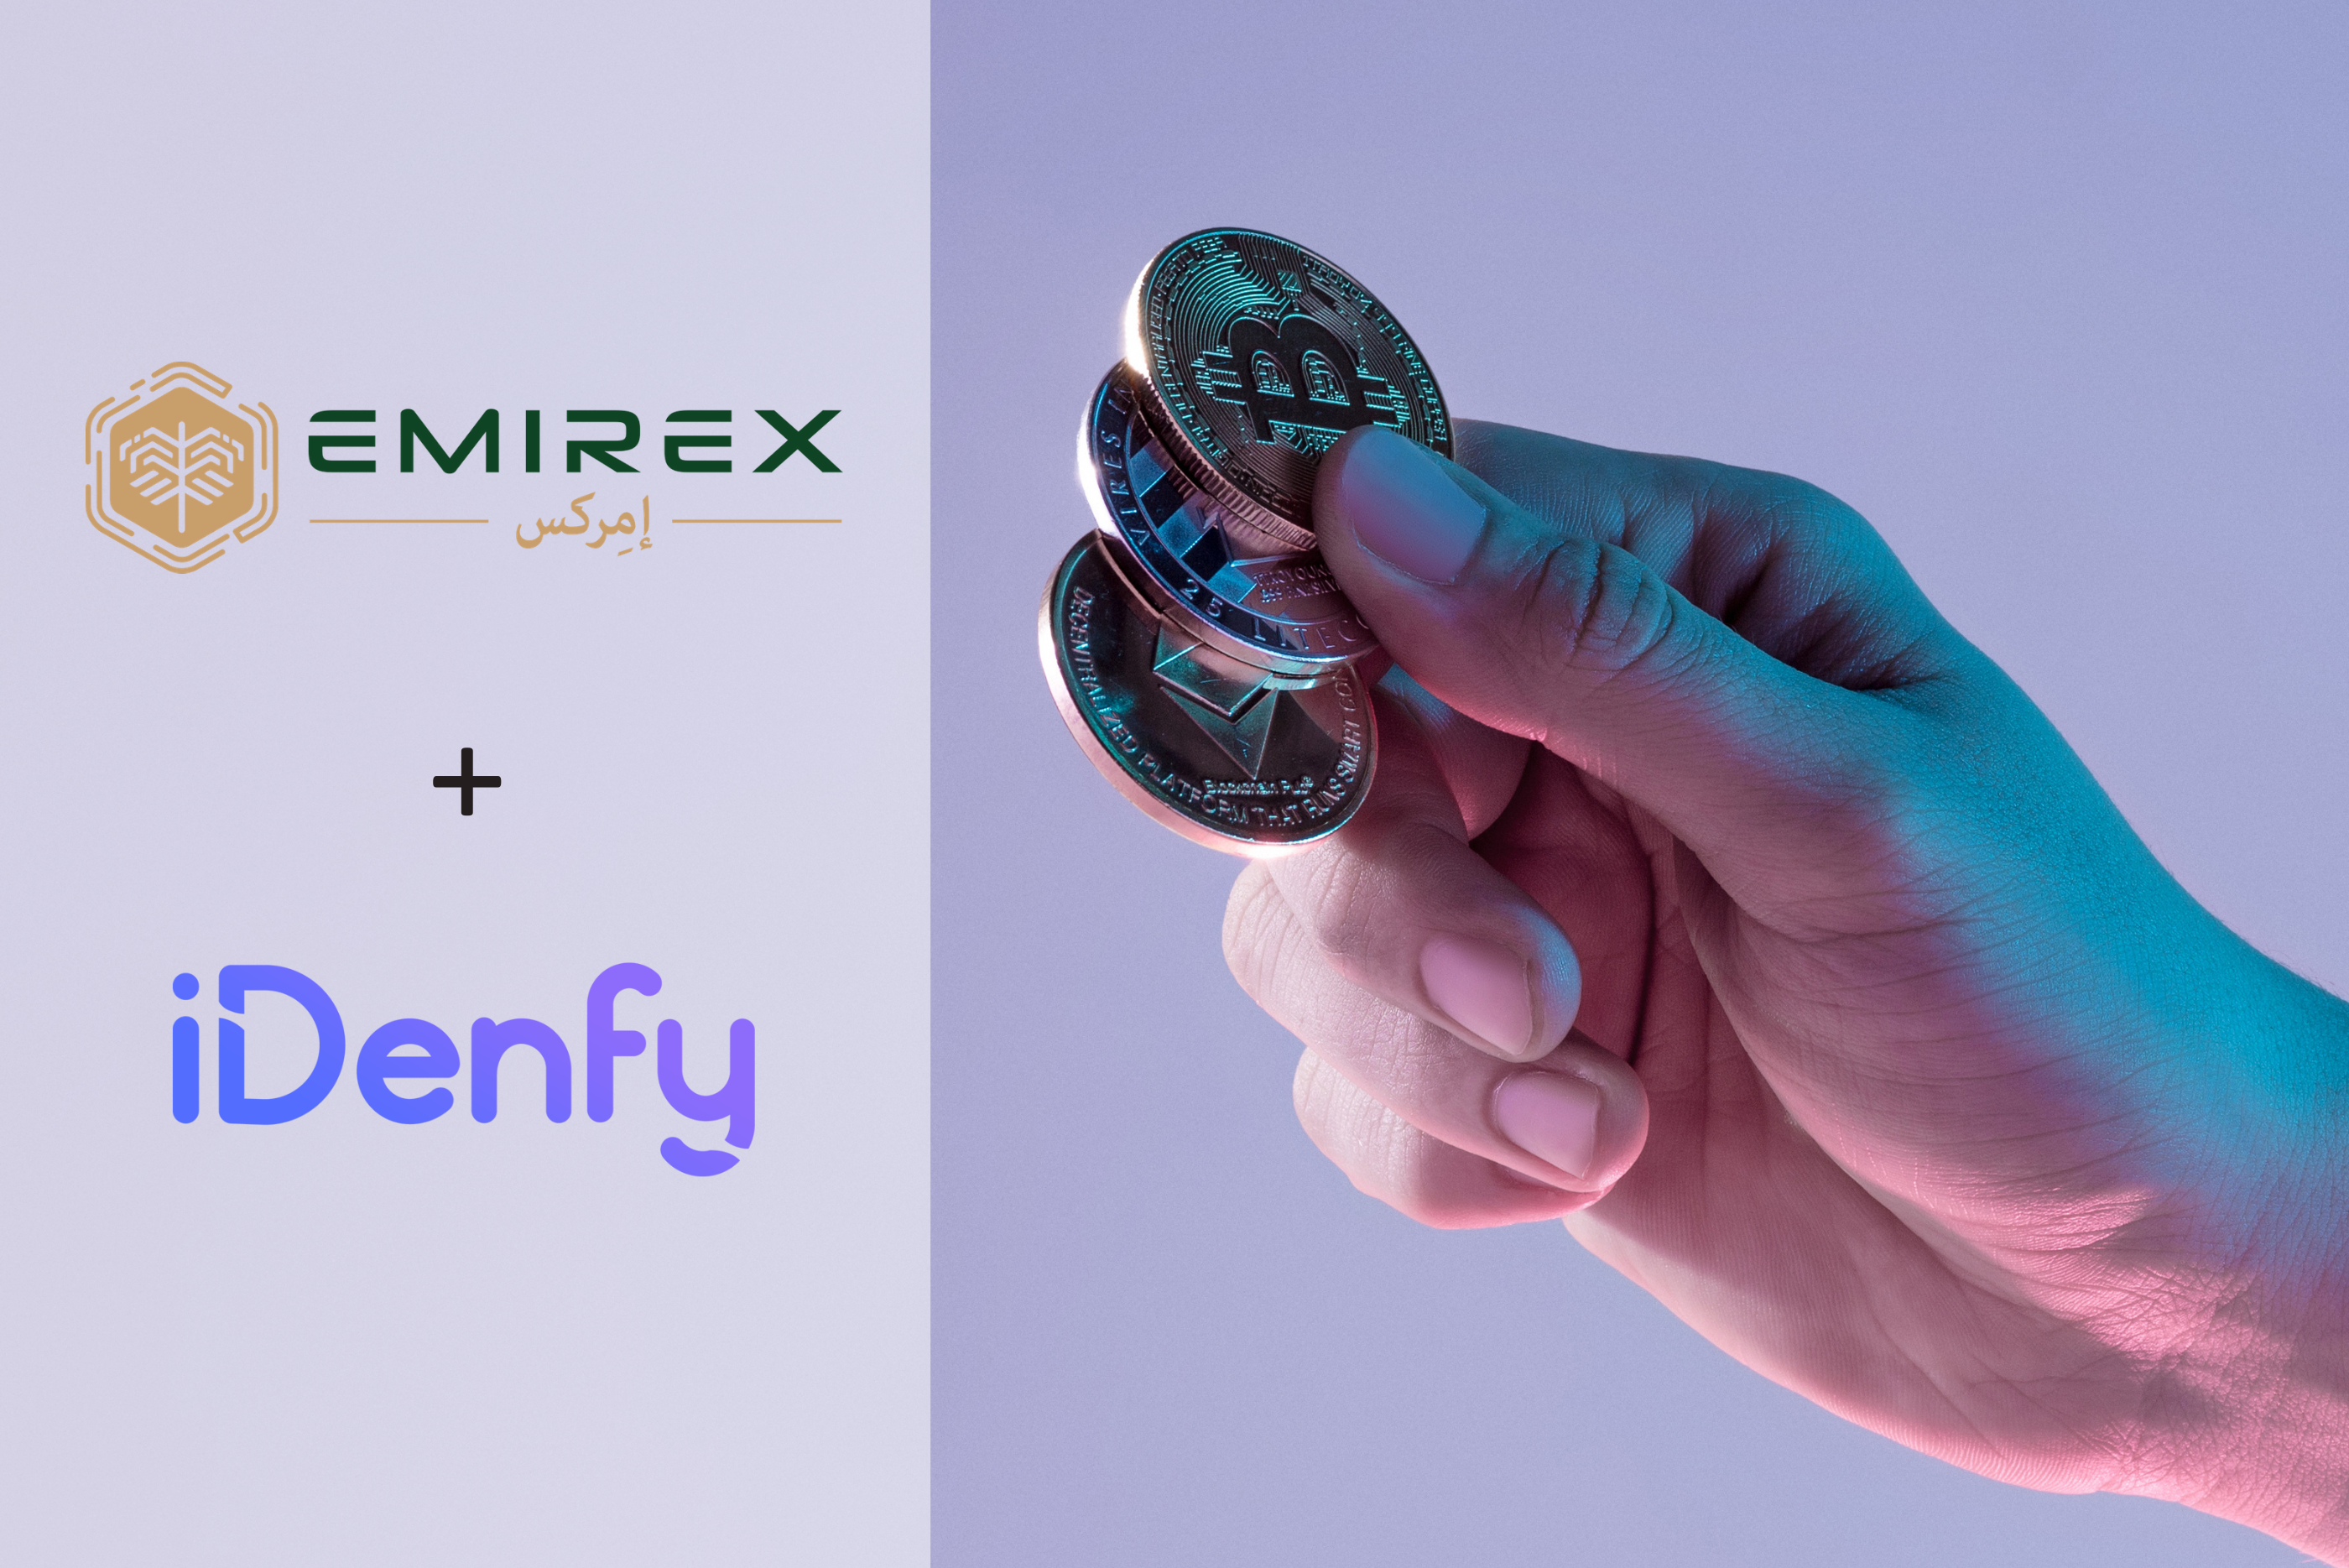 Emirex and iDenfy partnership announcement